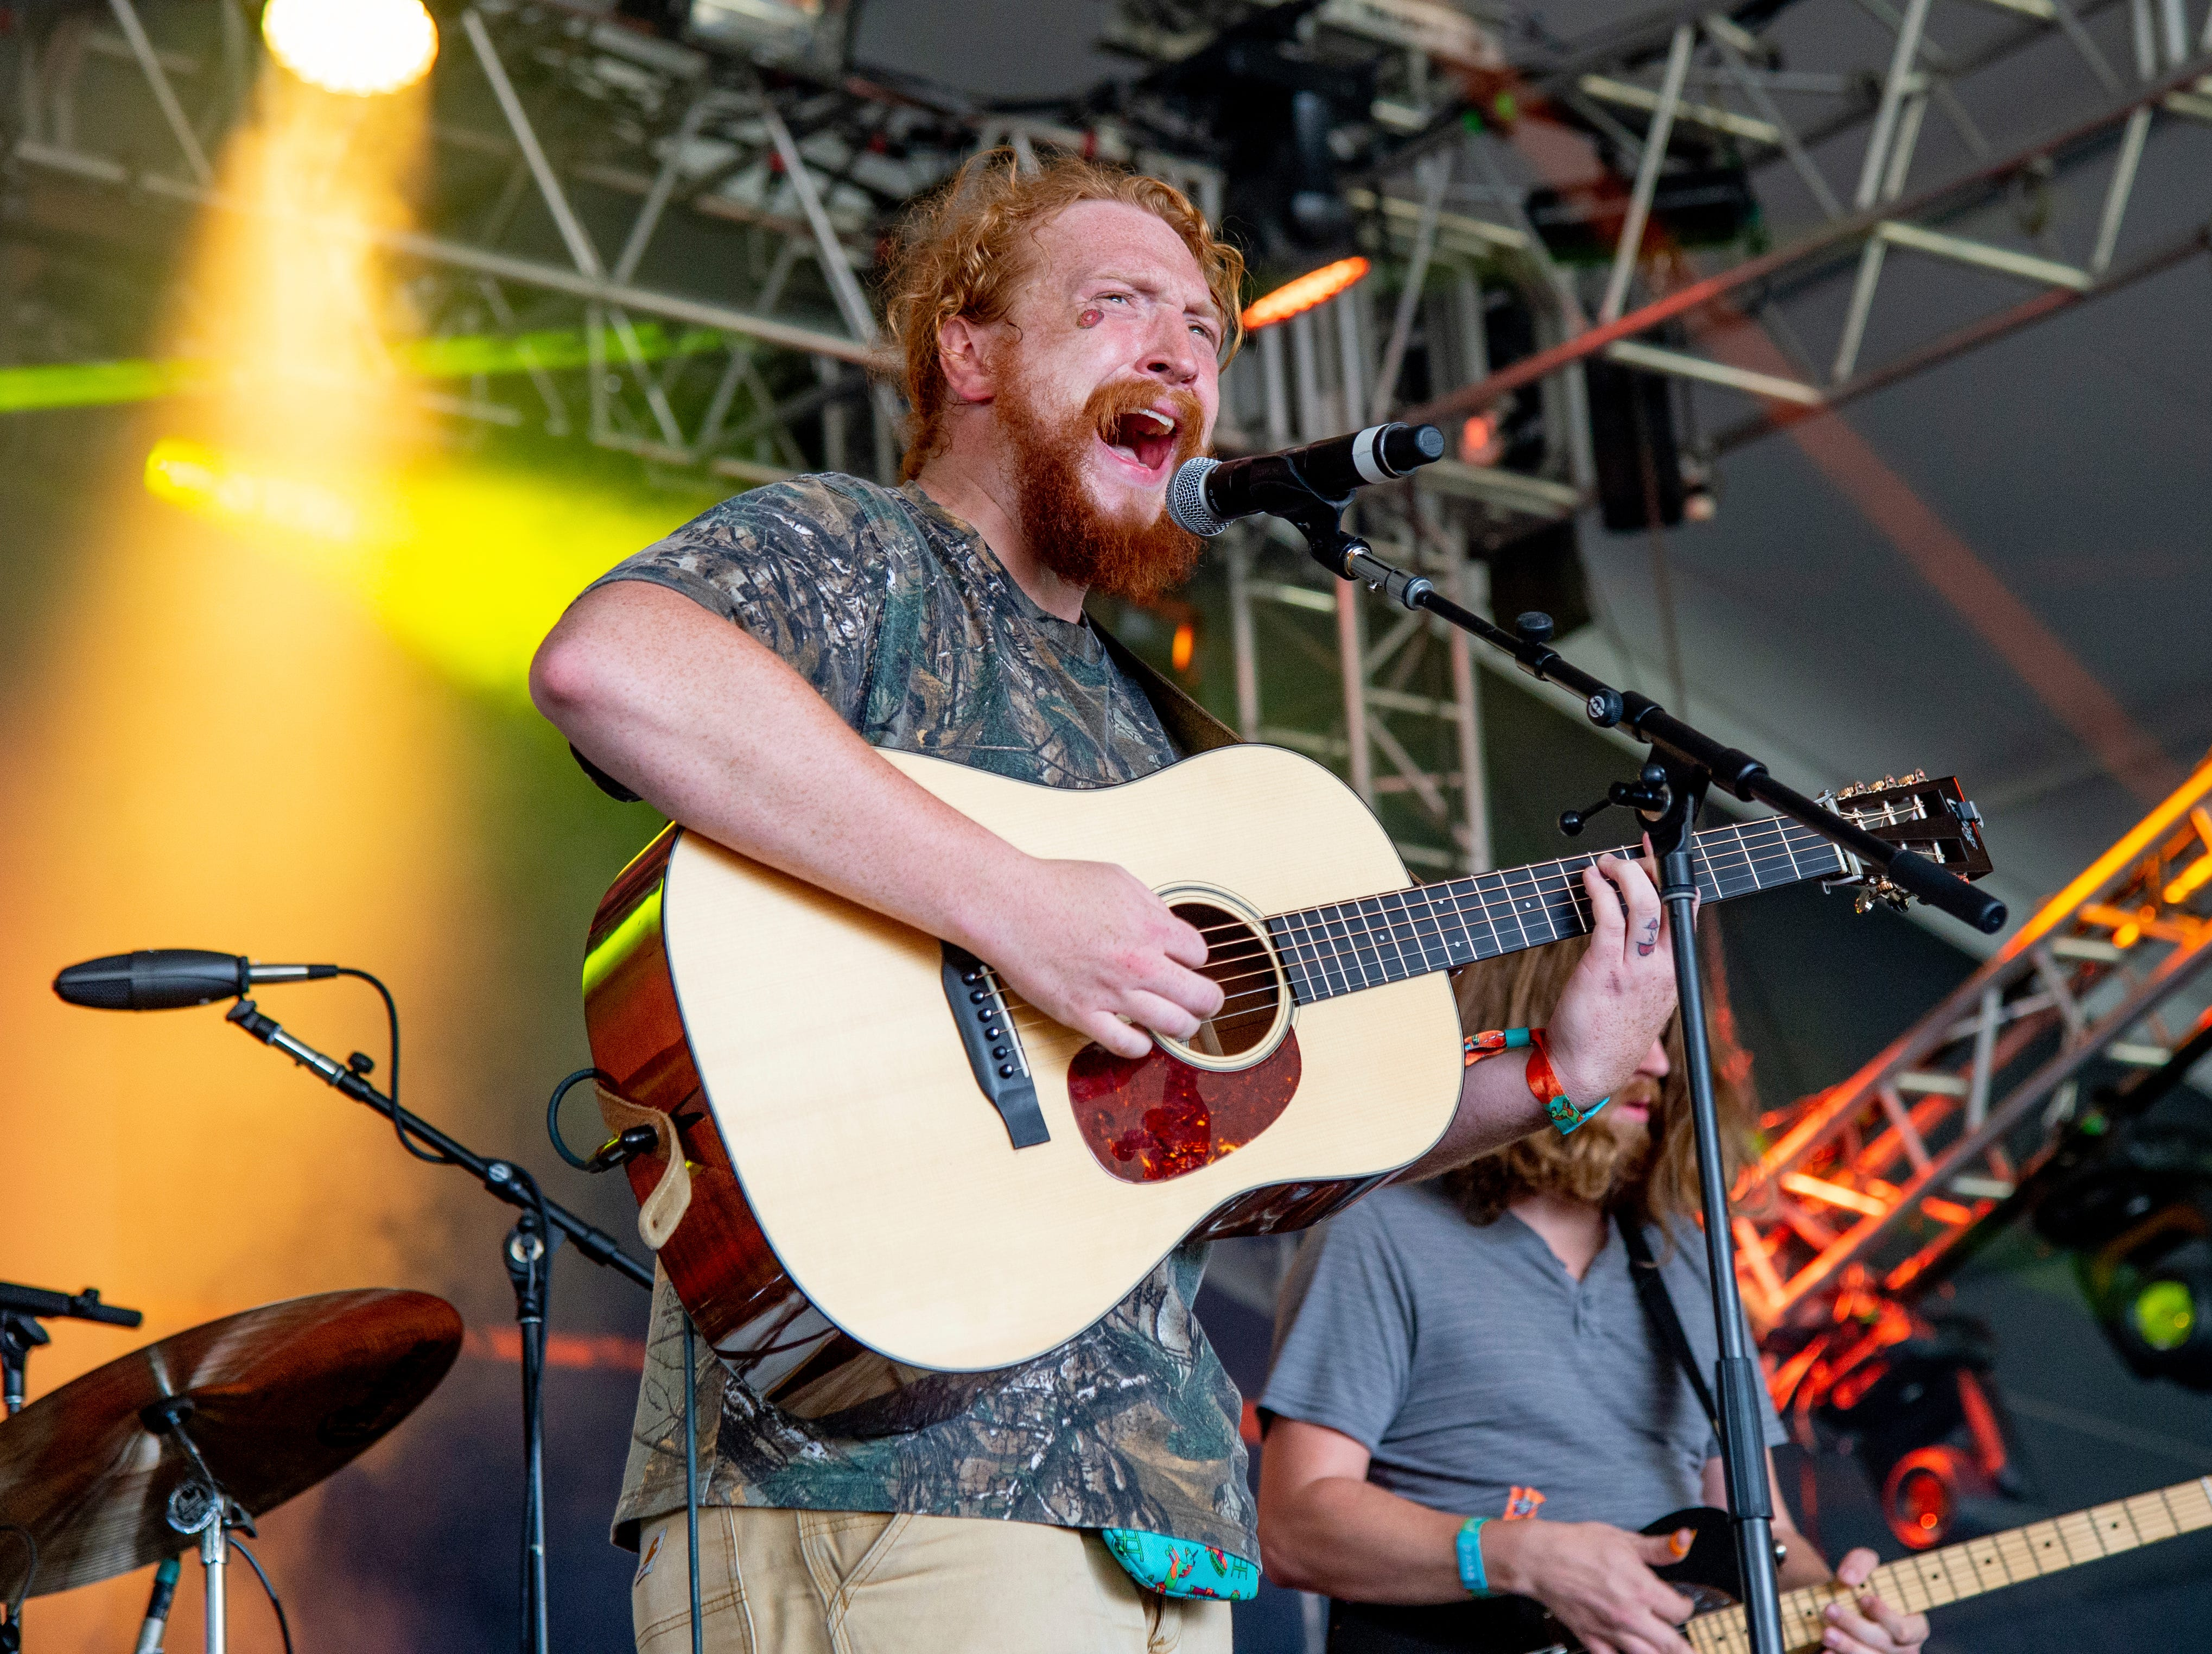 Tyler Childers performs at the Bonnaroo Music and Arts Festival on Sunday, June 8, 2018, in Manchester, Tenn. (Photo by Amy Harris/Invision/AP)